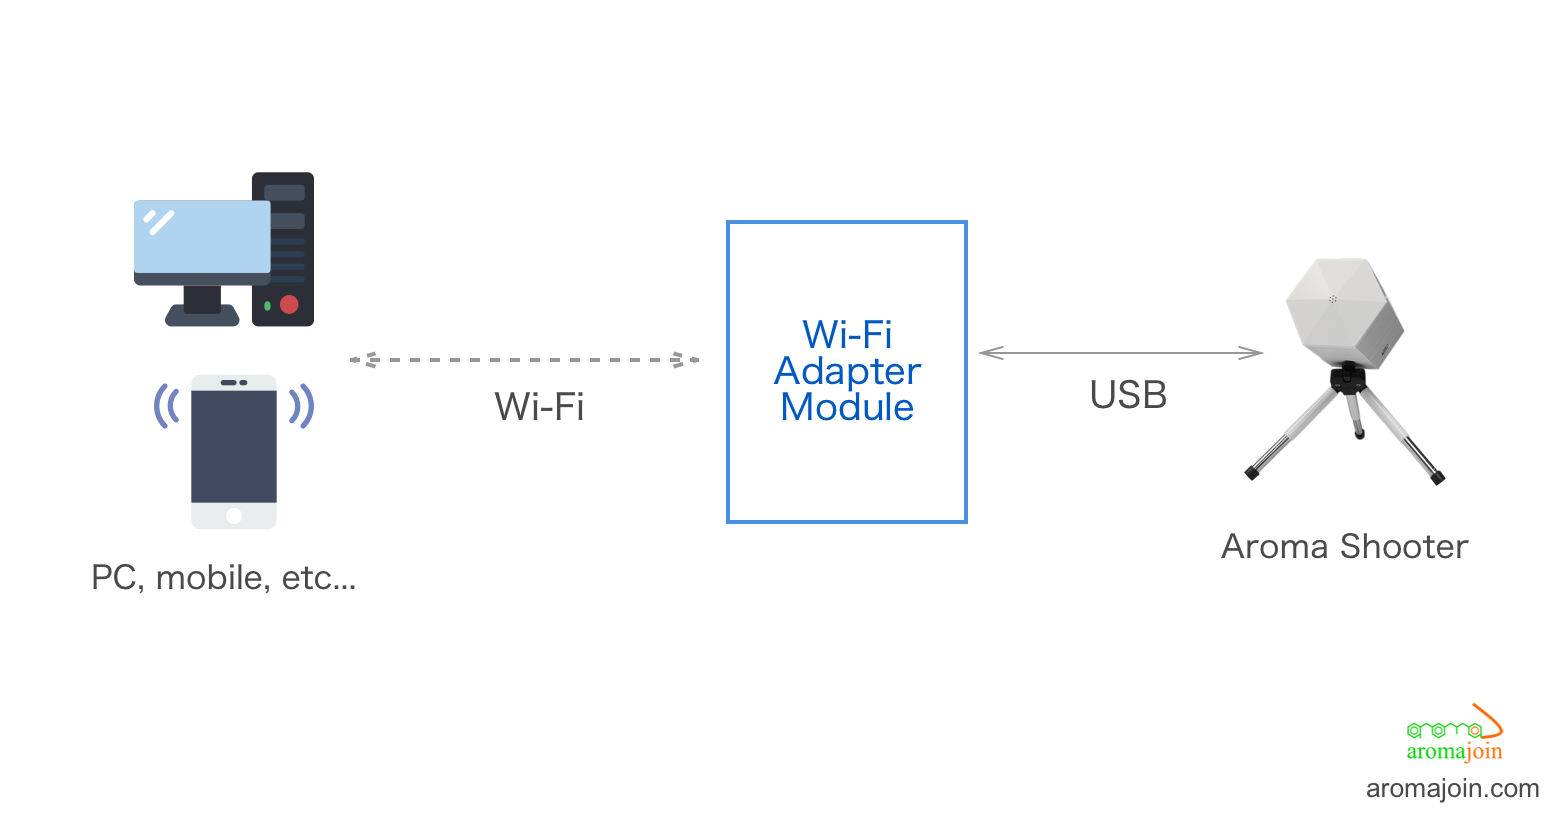 Expand Aroma Shooter connection using Wi-Fi adapter module